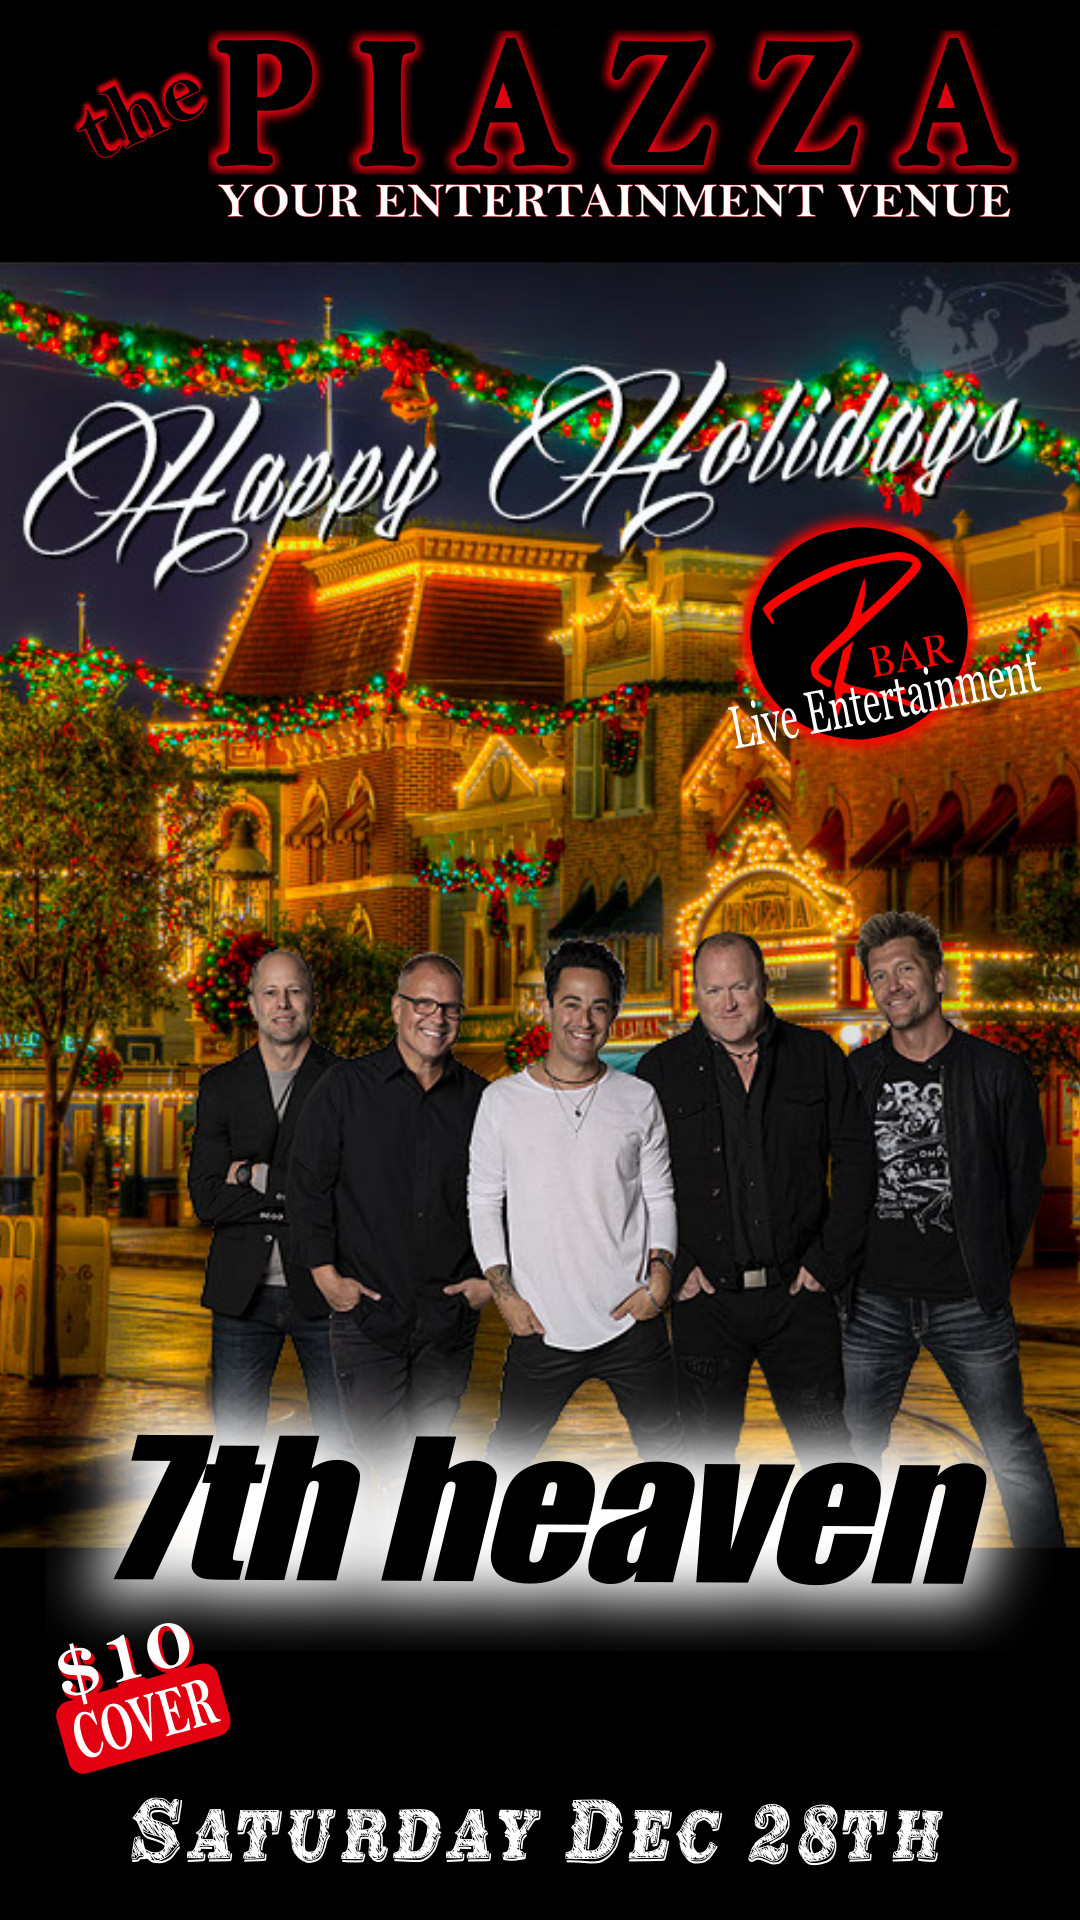 7th heaven Band - Live Entertainment @ the PIAZZA - Aurora